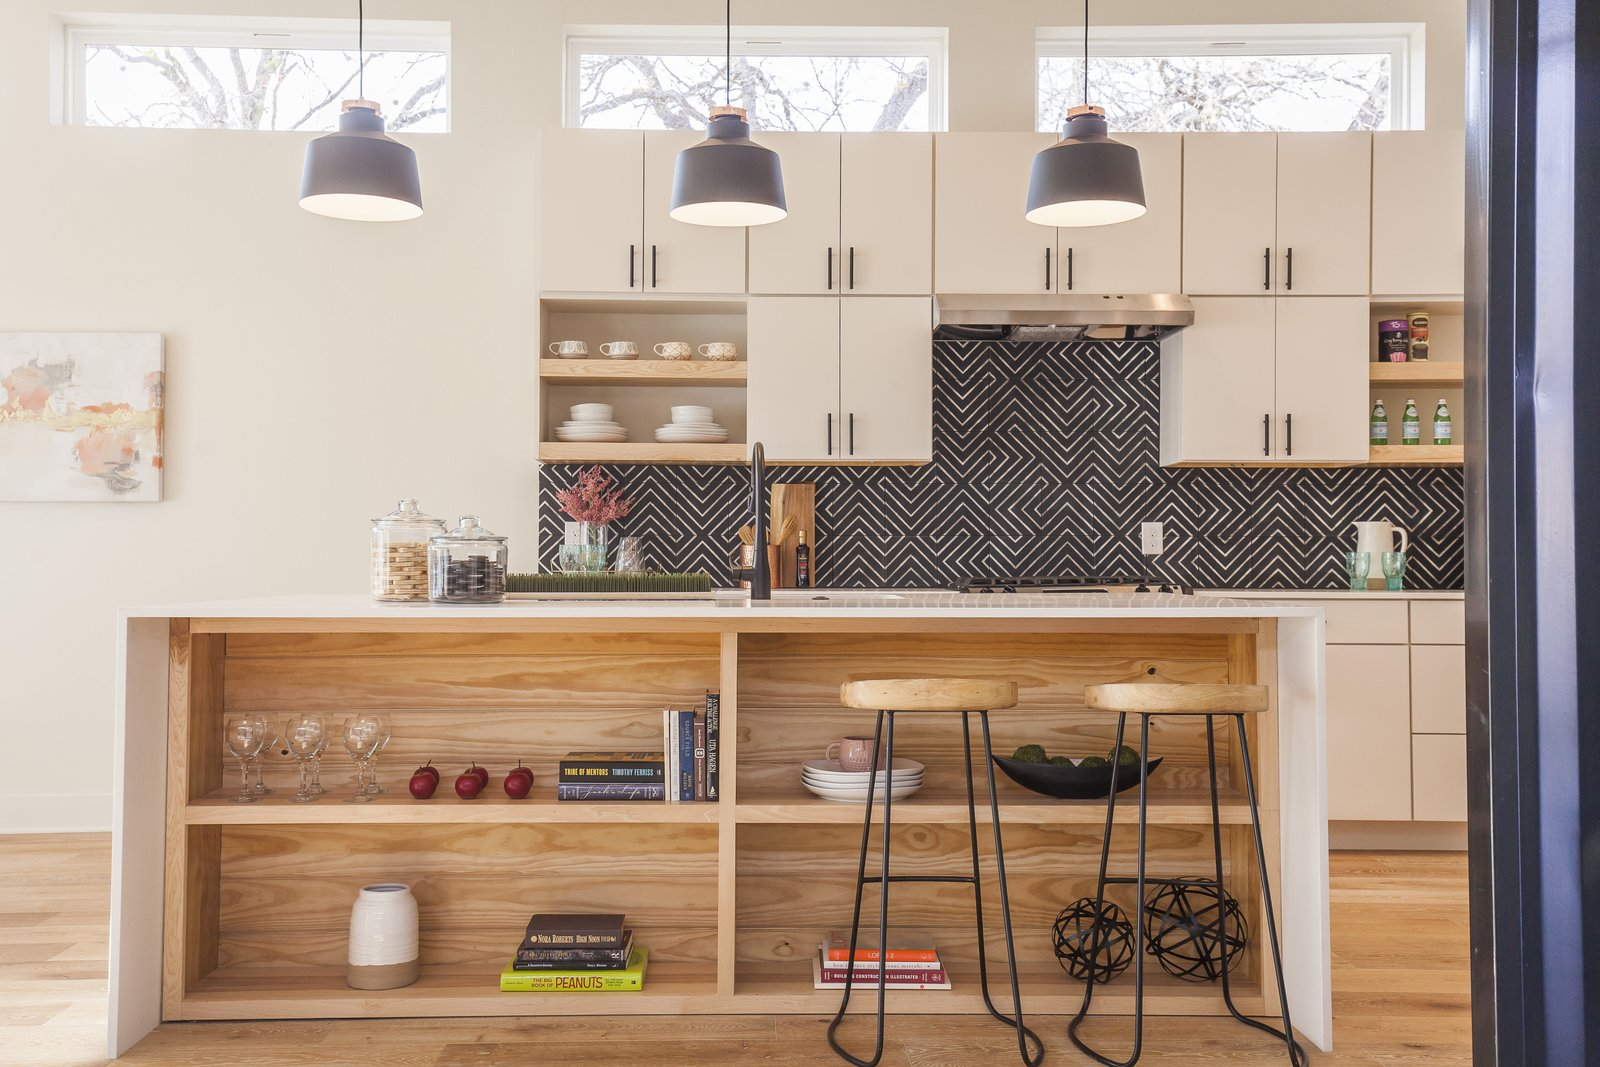 This is the Unit A Kitchen - a fun mix of warm colors and textures. 10/10 would buy :)